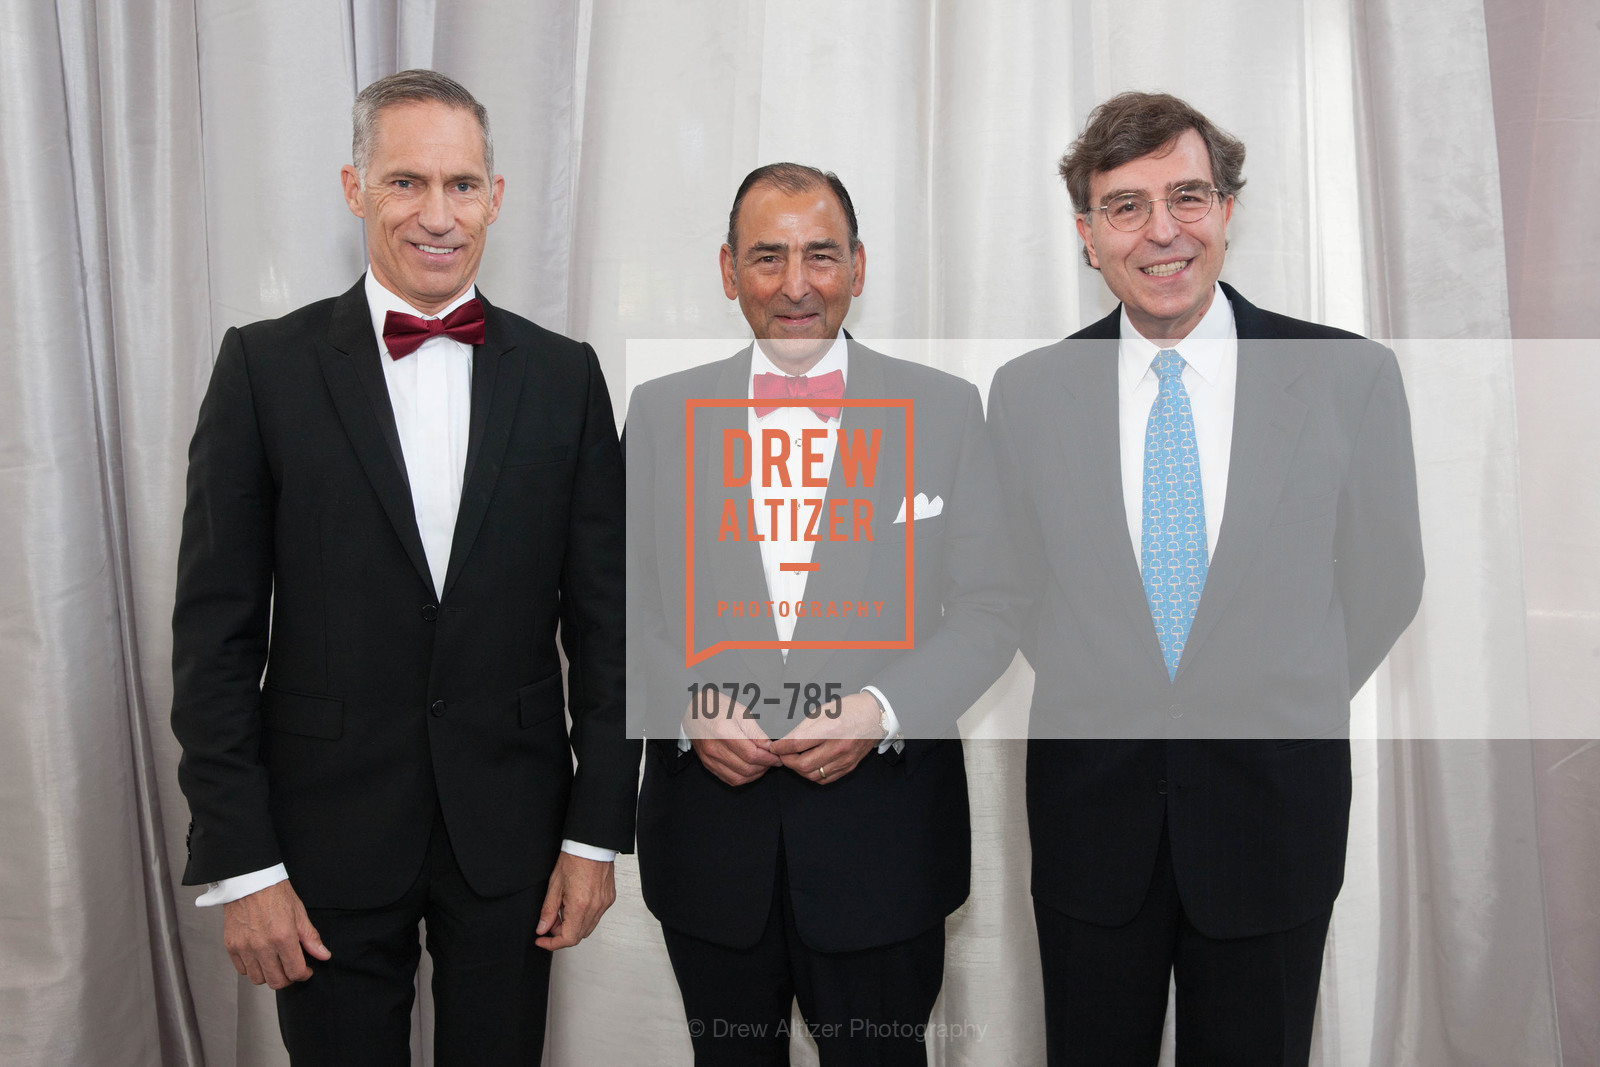 Mark Cloutier, Alexander Mehran, Neal Litvack, 2015 RED CROSS Gala, US, April 11th, 2015,Drew Altizer, Drew Altizer Photography, full-service agency, private events, San Francisco photographer, photographer california